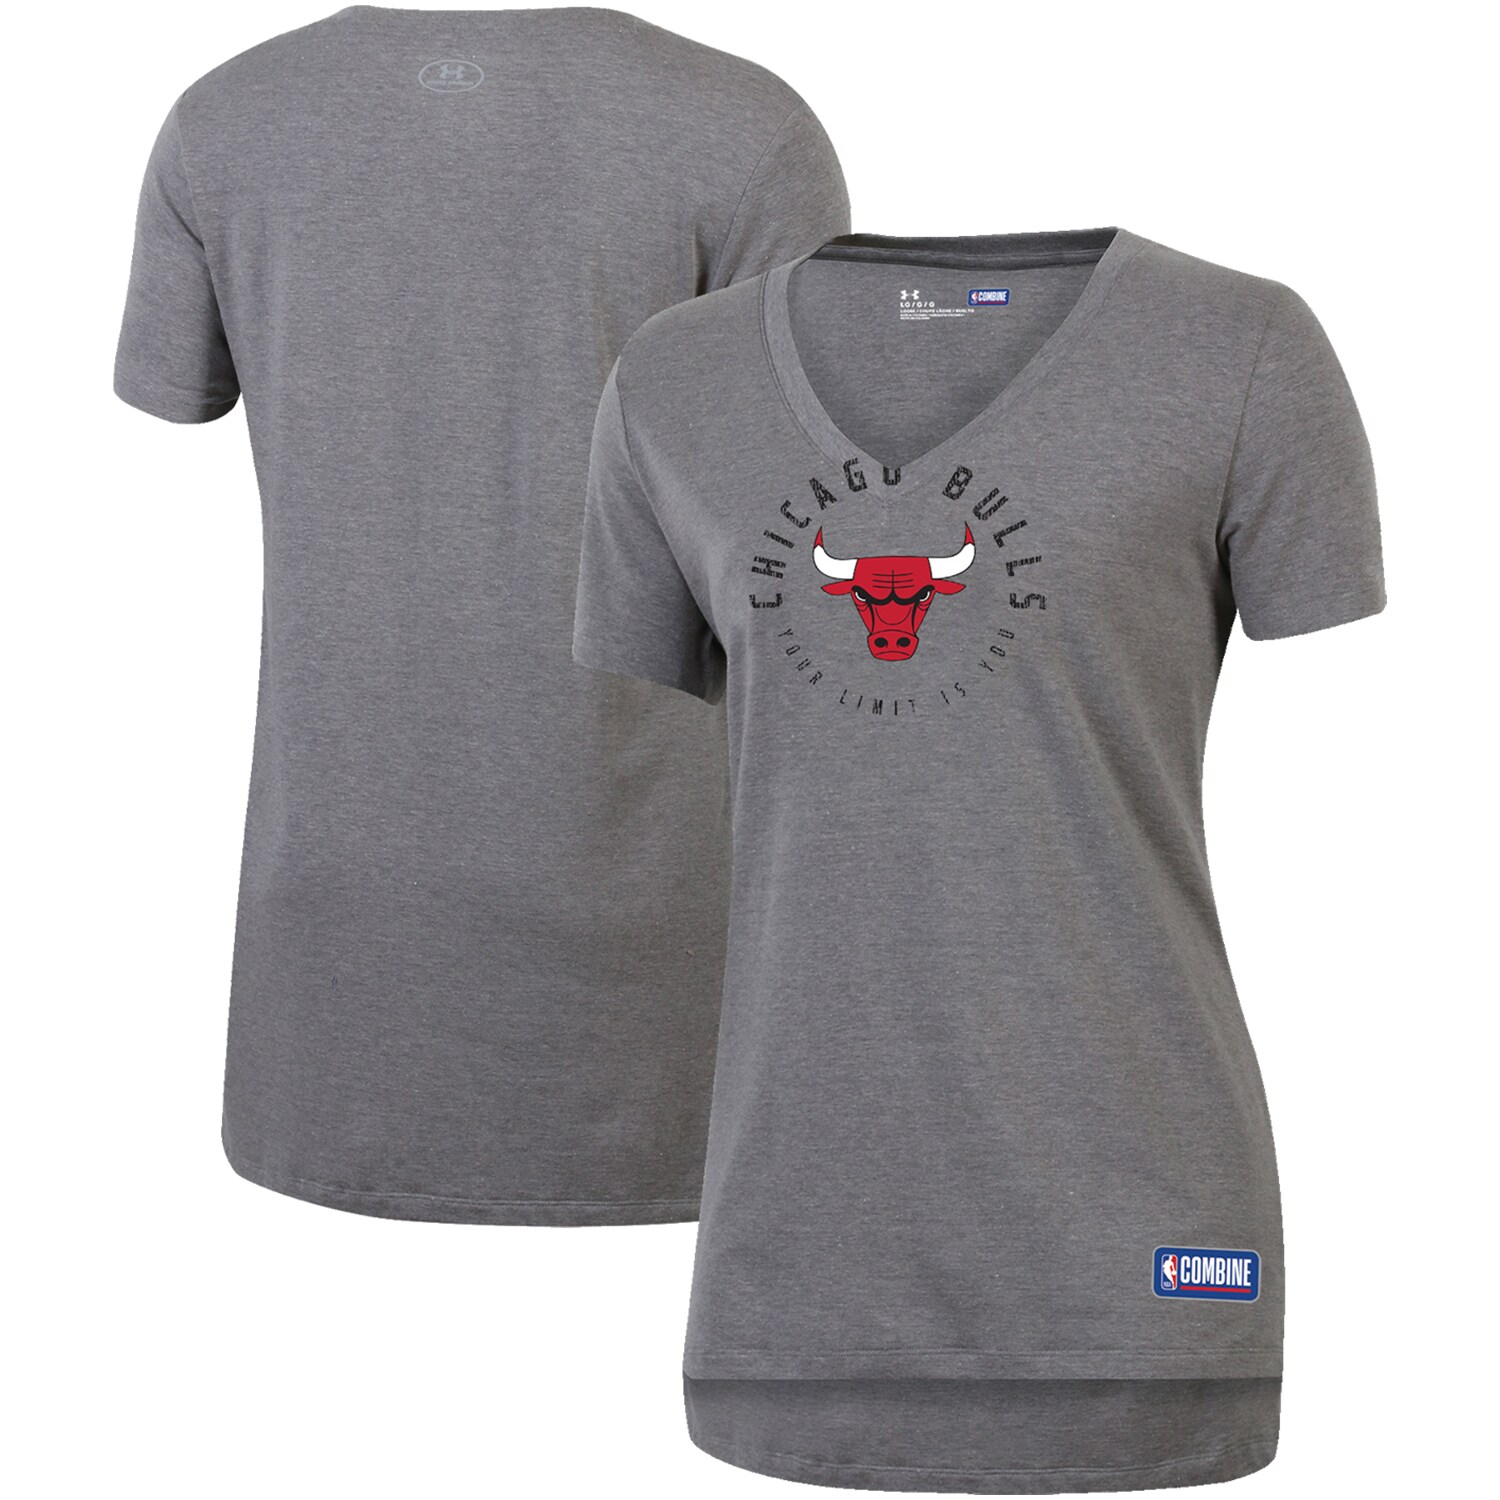 Chicago Bulls Under Armour Women's Combine Authentic Your Limit Is You V-Neck T-Shirt - Heathered Gray